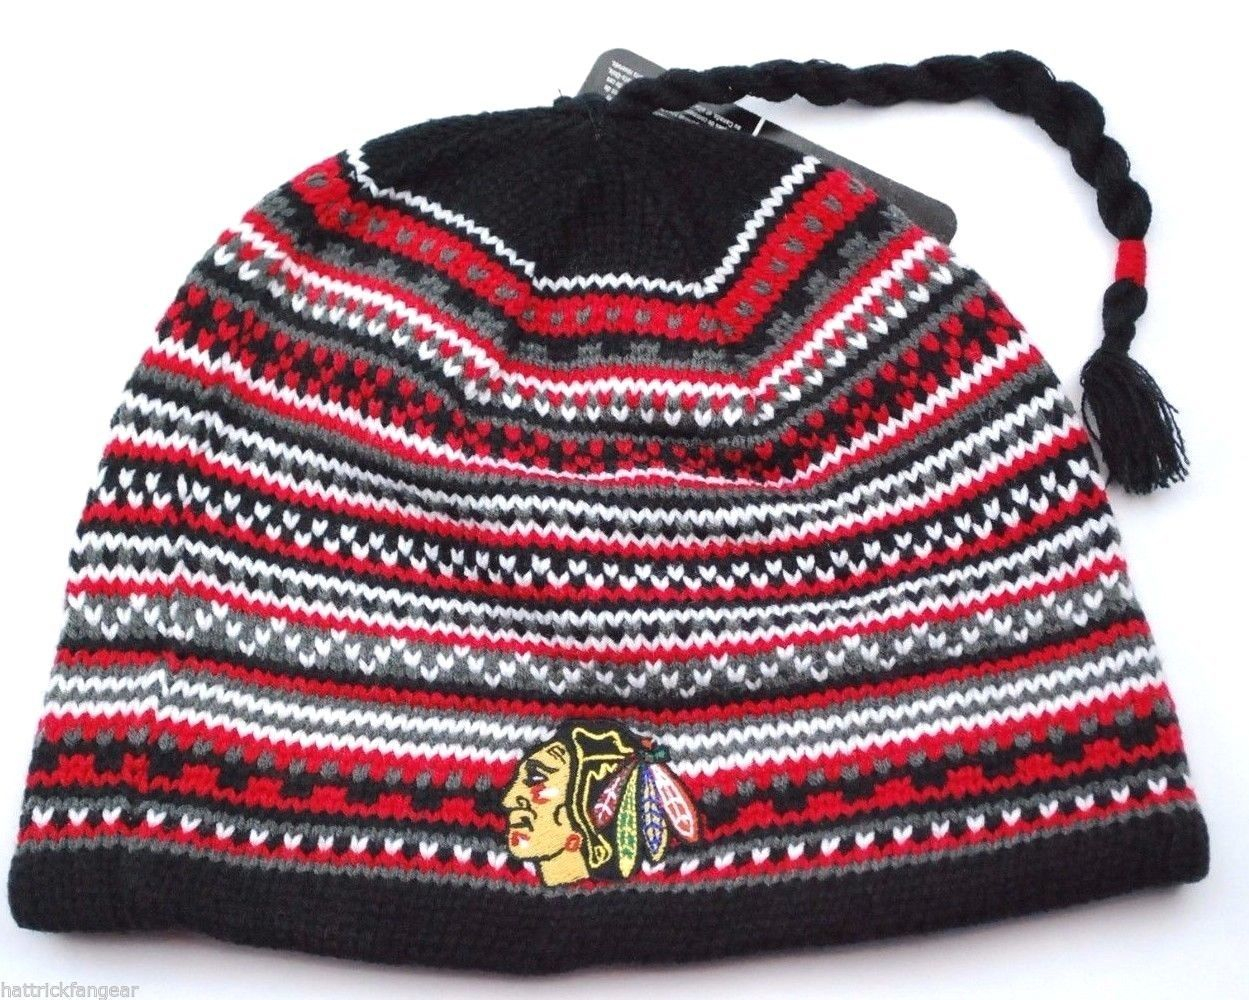 404b9680 S l1600. S l1600. Previous. CHICAGO BLACKHAWKS REEBOK NHL FACE OFF TASSEL KNIT  WINTER HOCKEY HAT/BEANIE · CHICAGO BLACKHAWKS ...